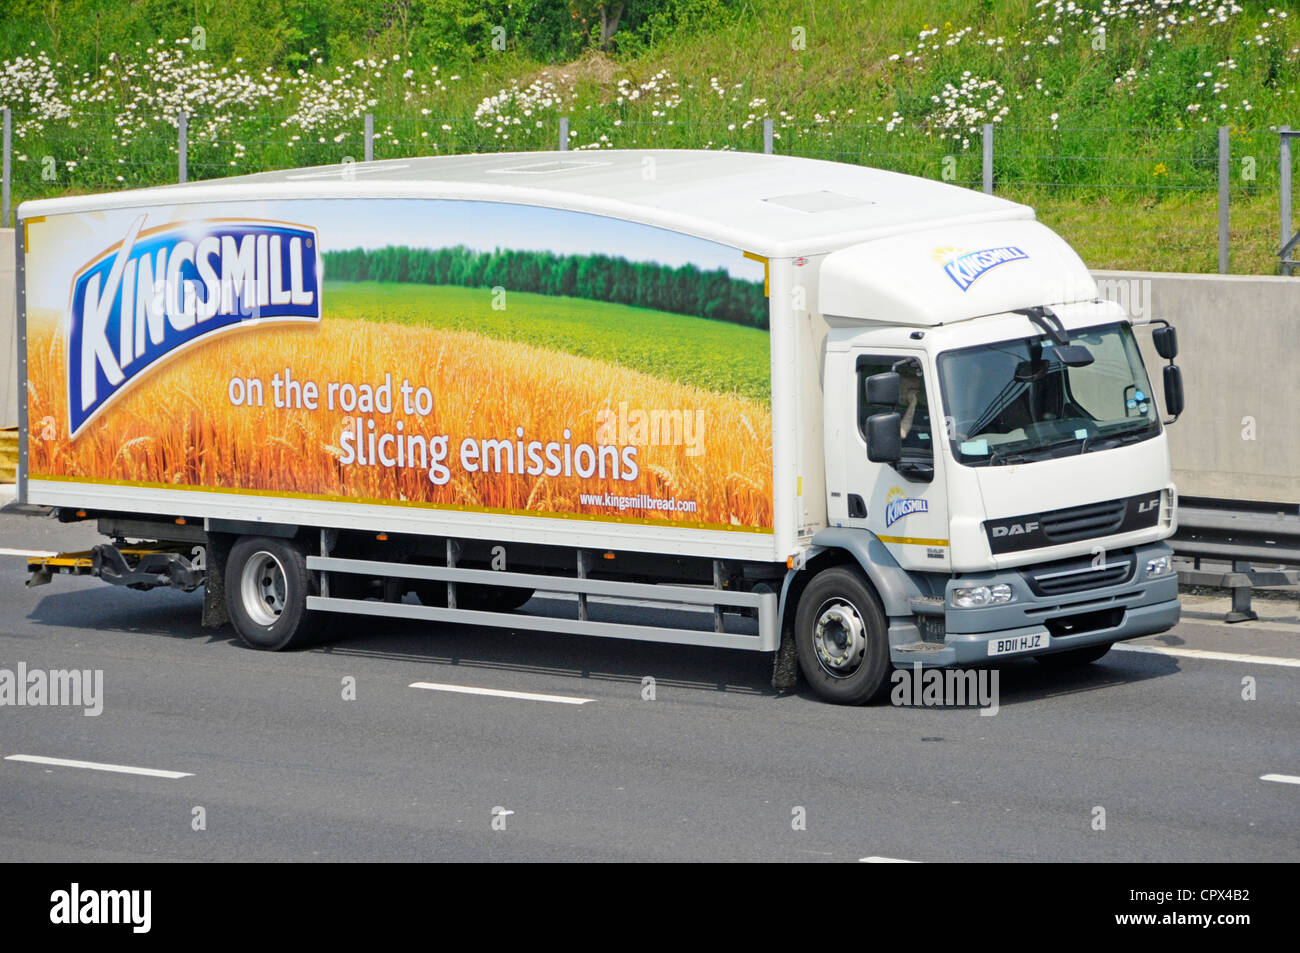 Streamlined Kingsmill bread lorry with slogans about slicing emissions - Stock Image